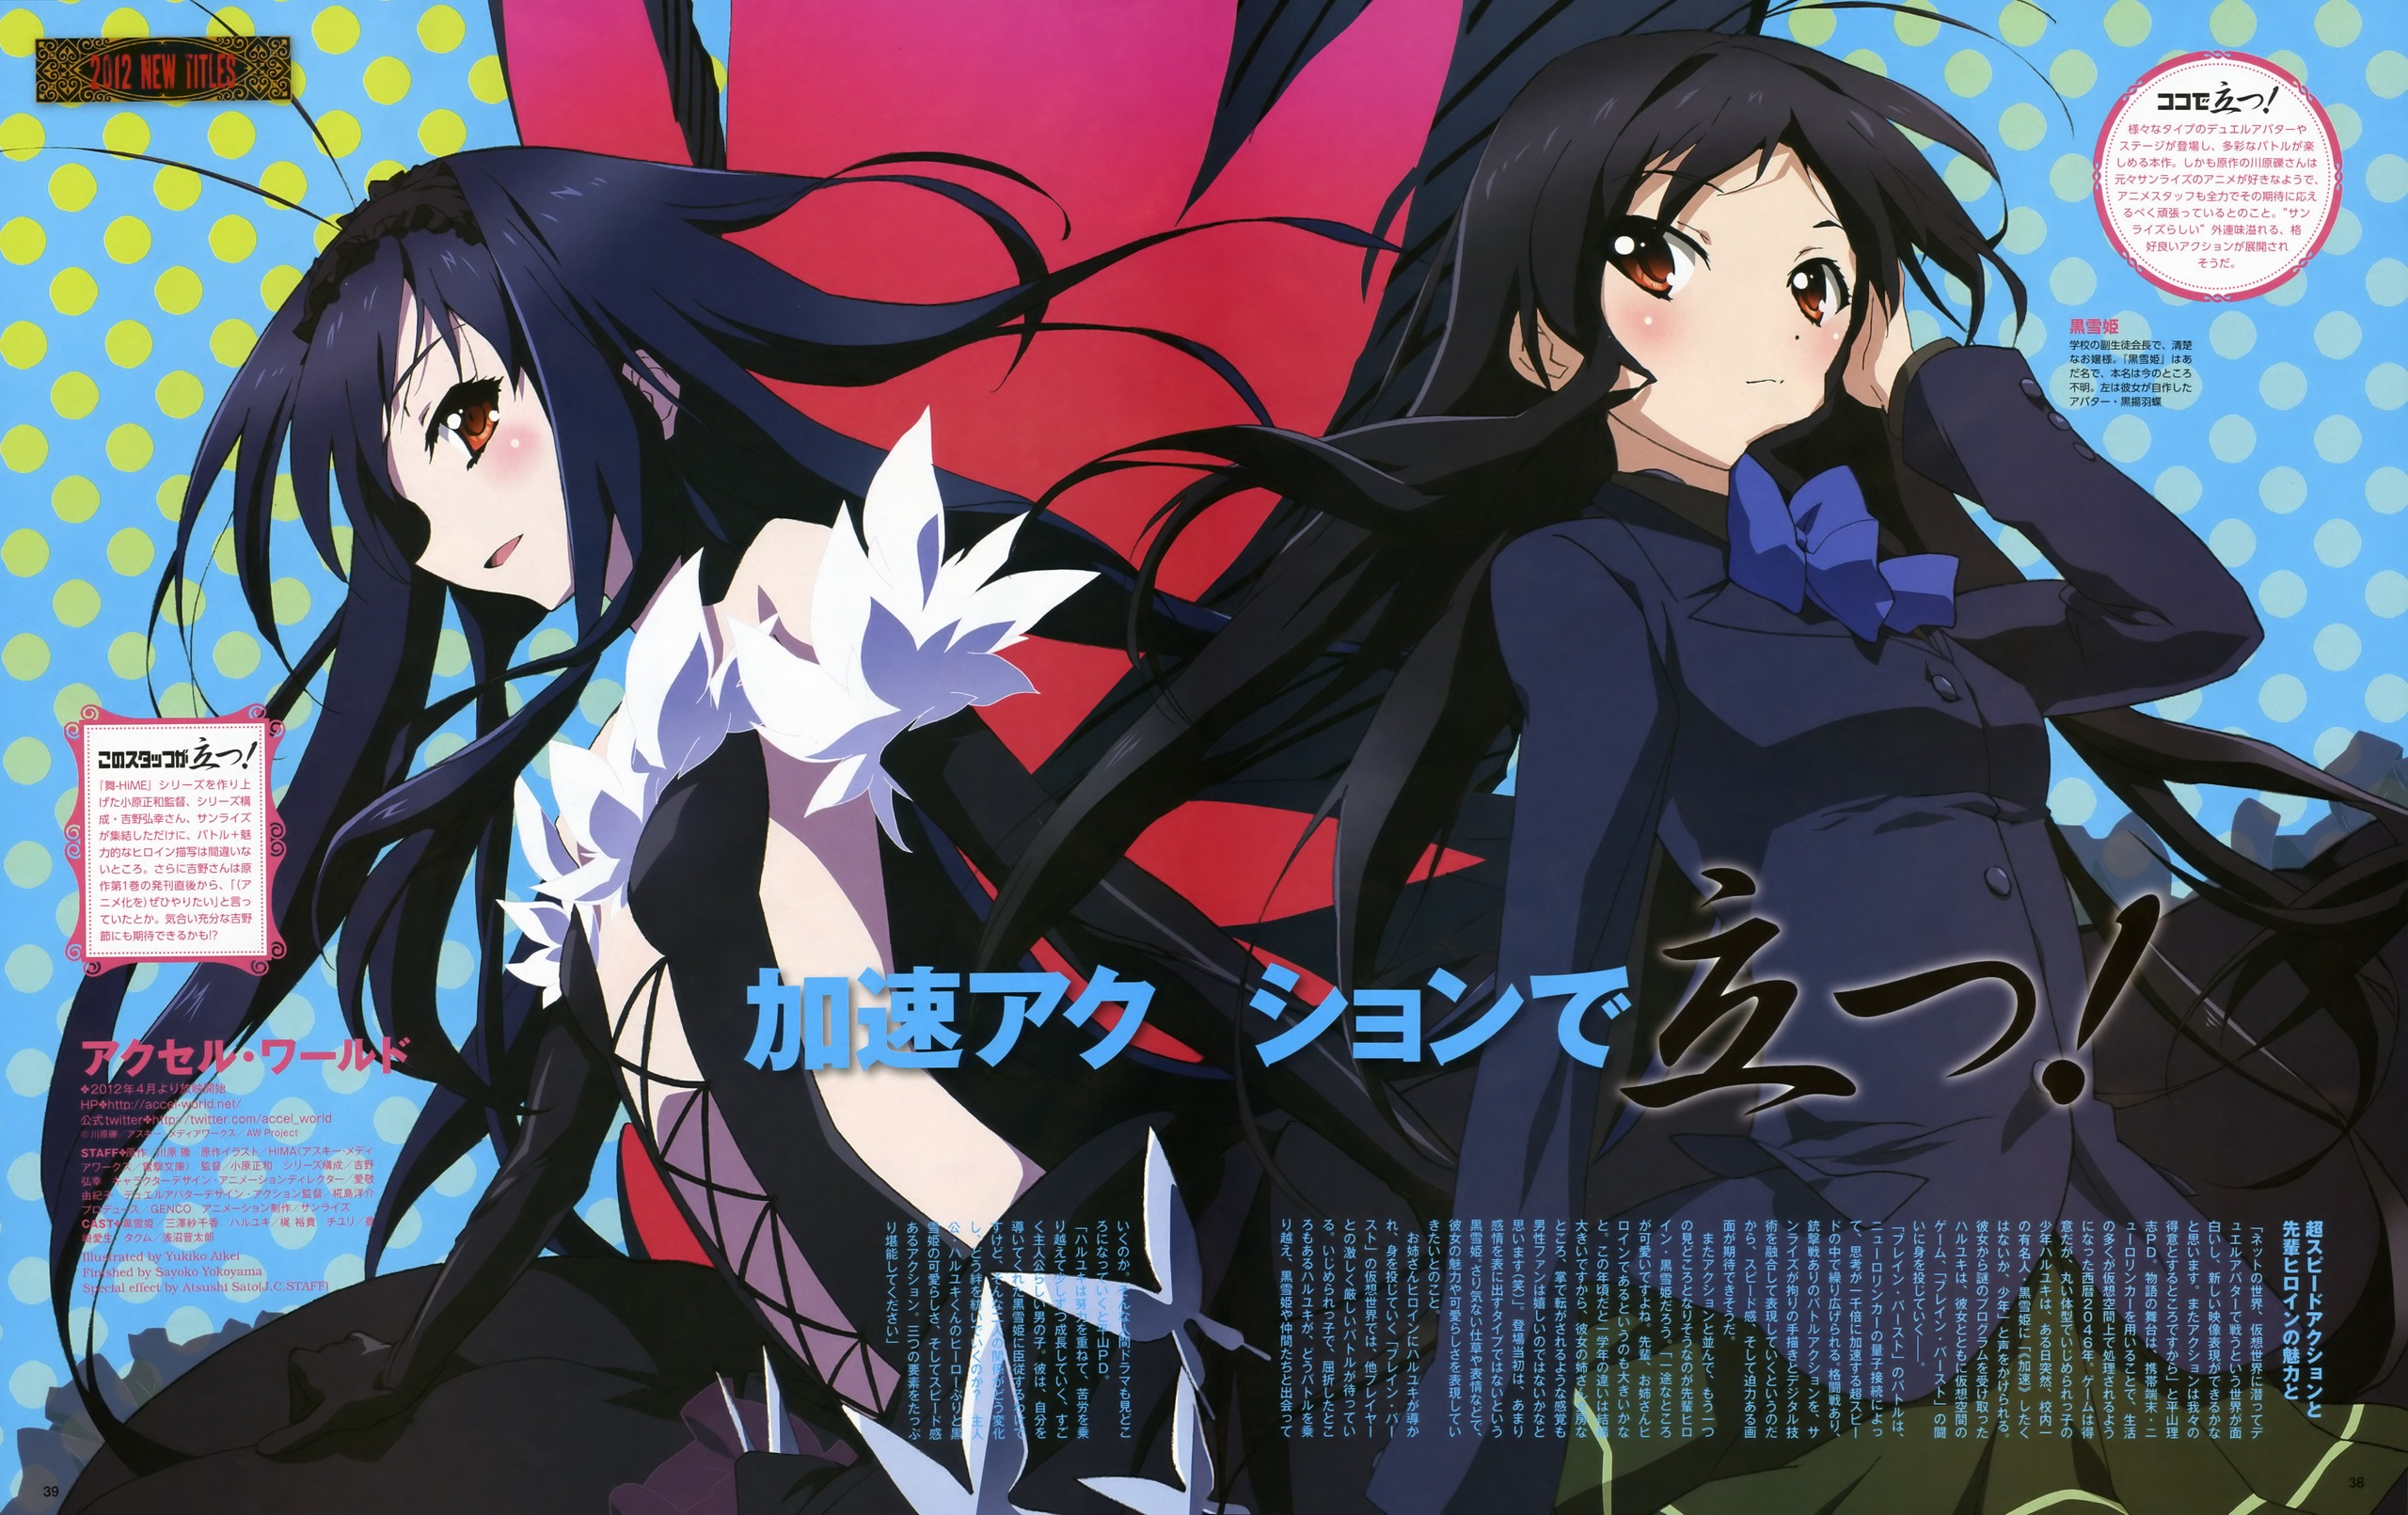 Accel World Images Snow Black HD Wallpaper And Background Photos